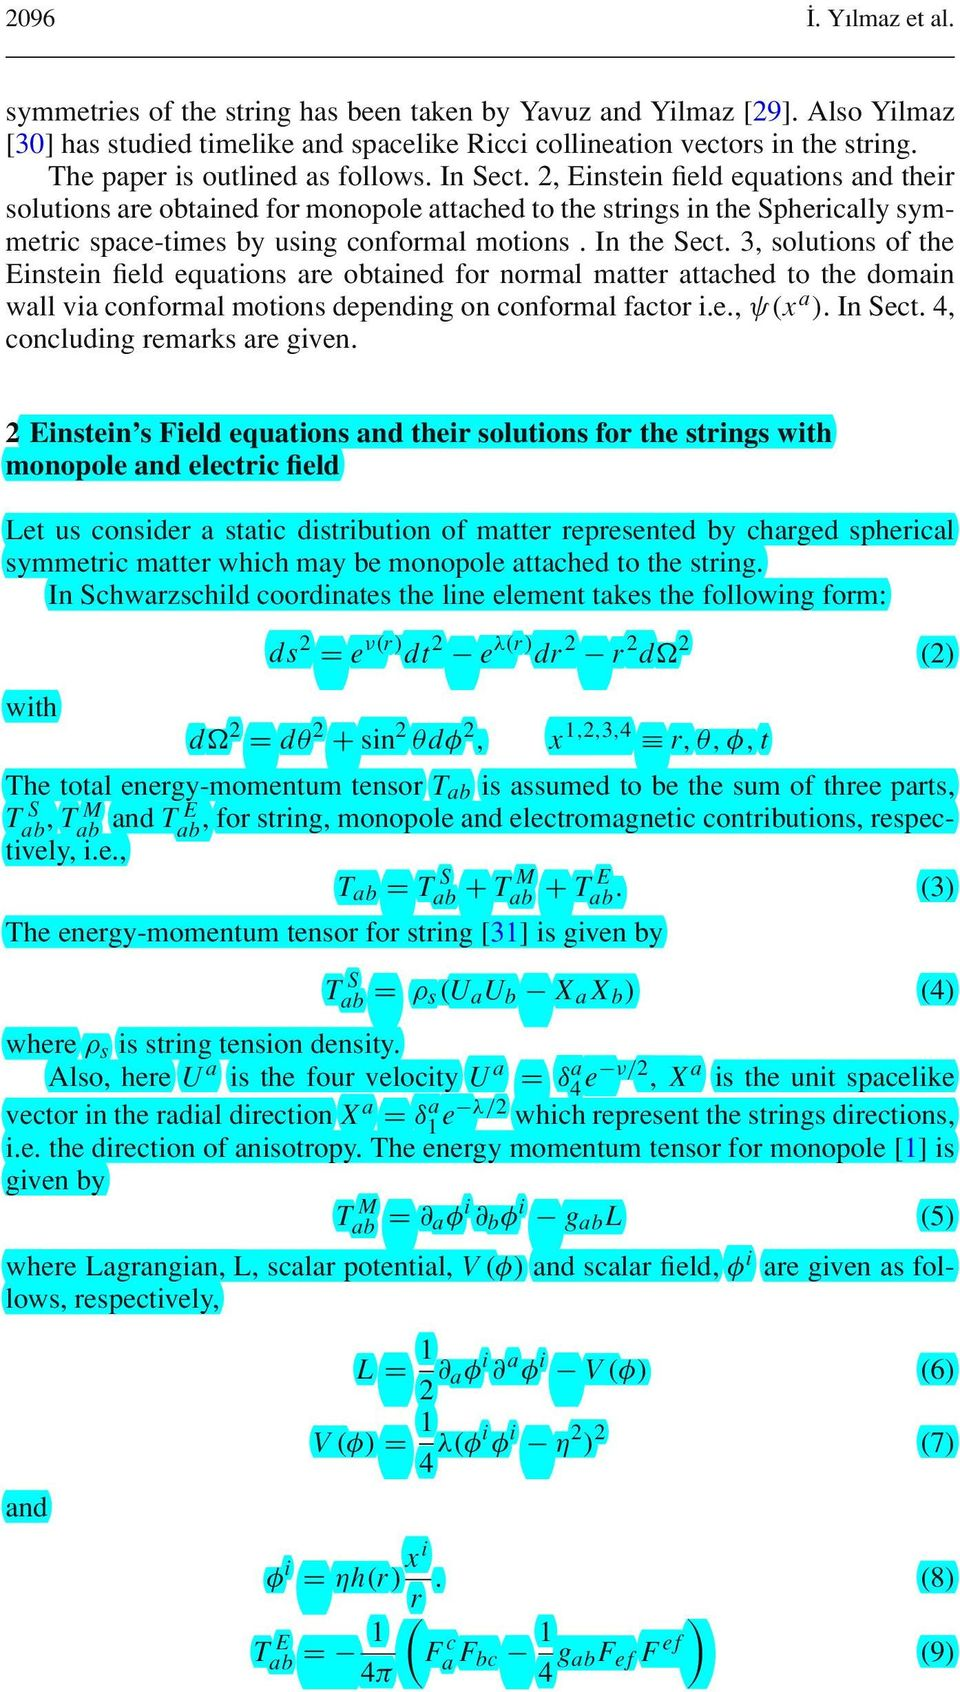 , Einstein field equations and their solutions are obtained for monopole attached to the strings in the Spherically symmetric space-times by using conformal motions. In the Sect.